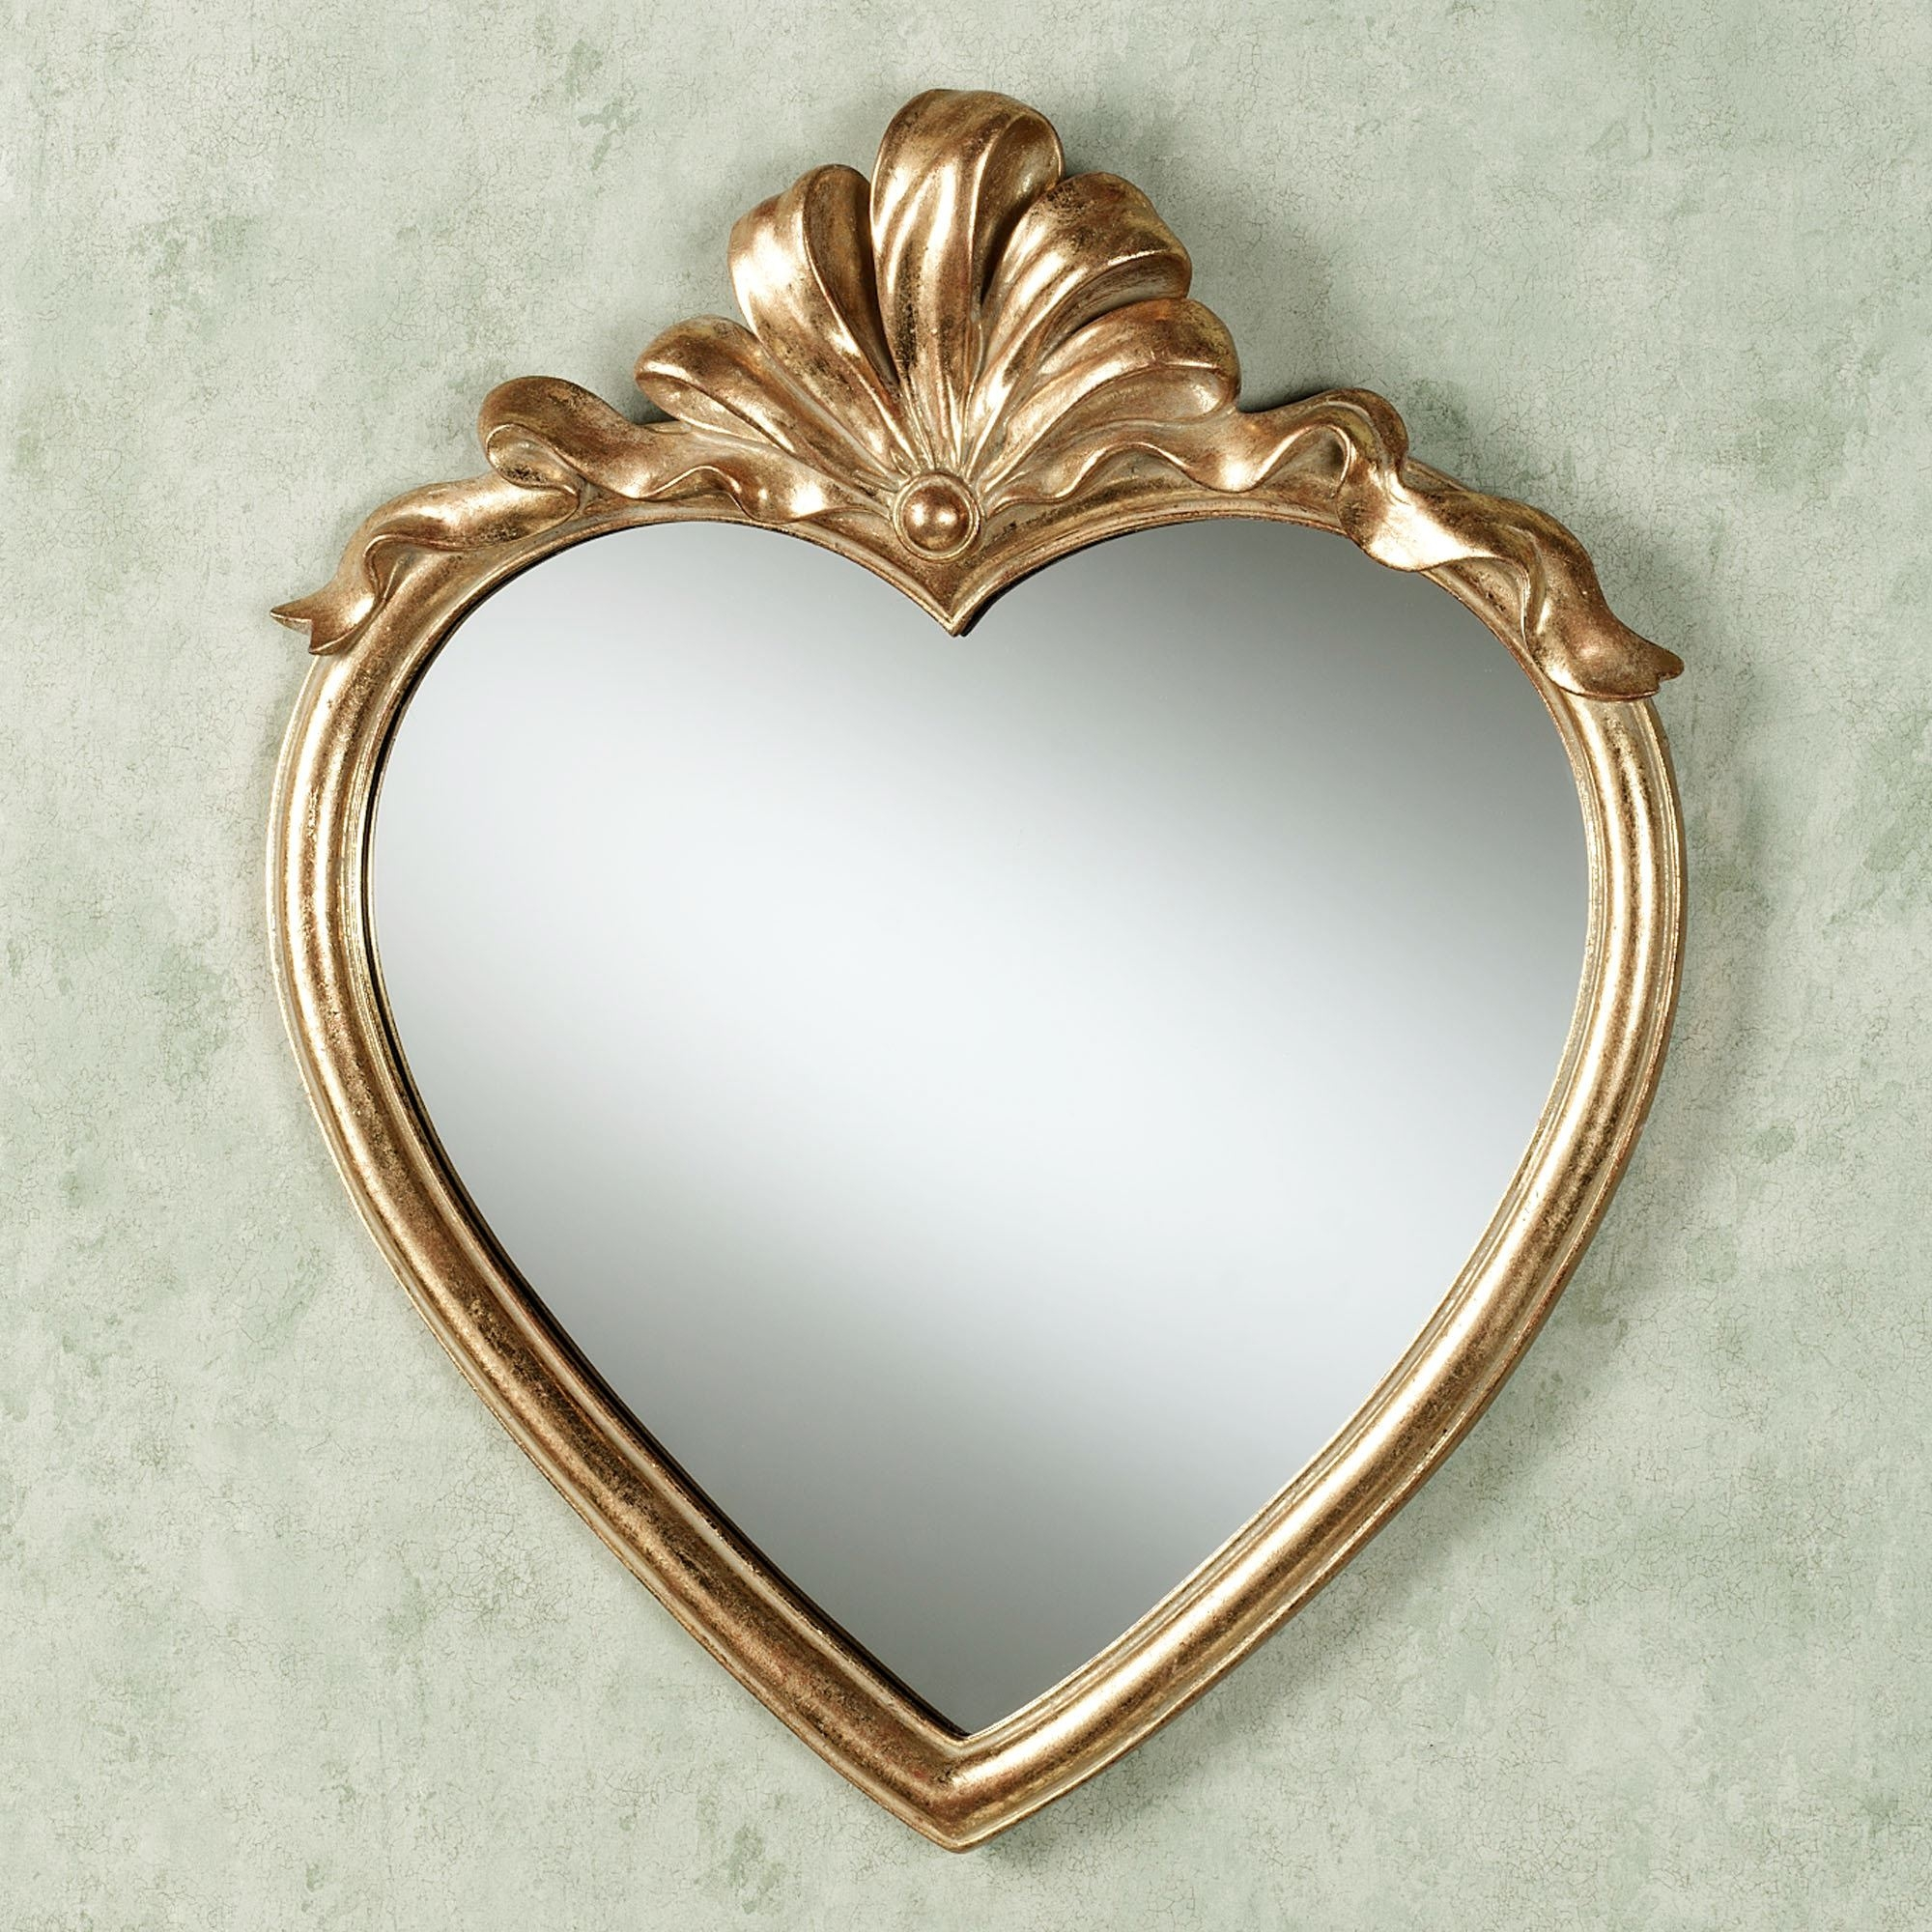 Bathroom Wall Mirrors Throughout Heart Wall Mirror (Image 3 of 15)